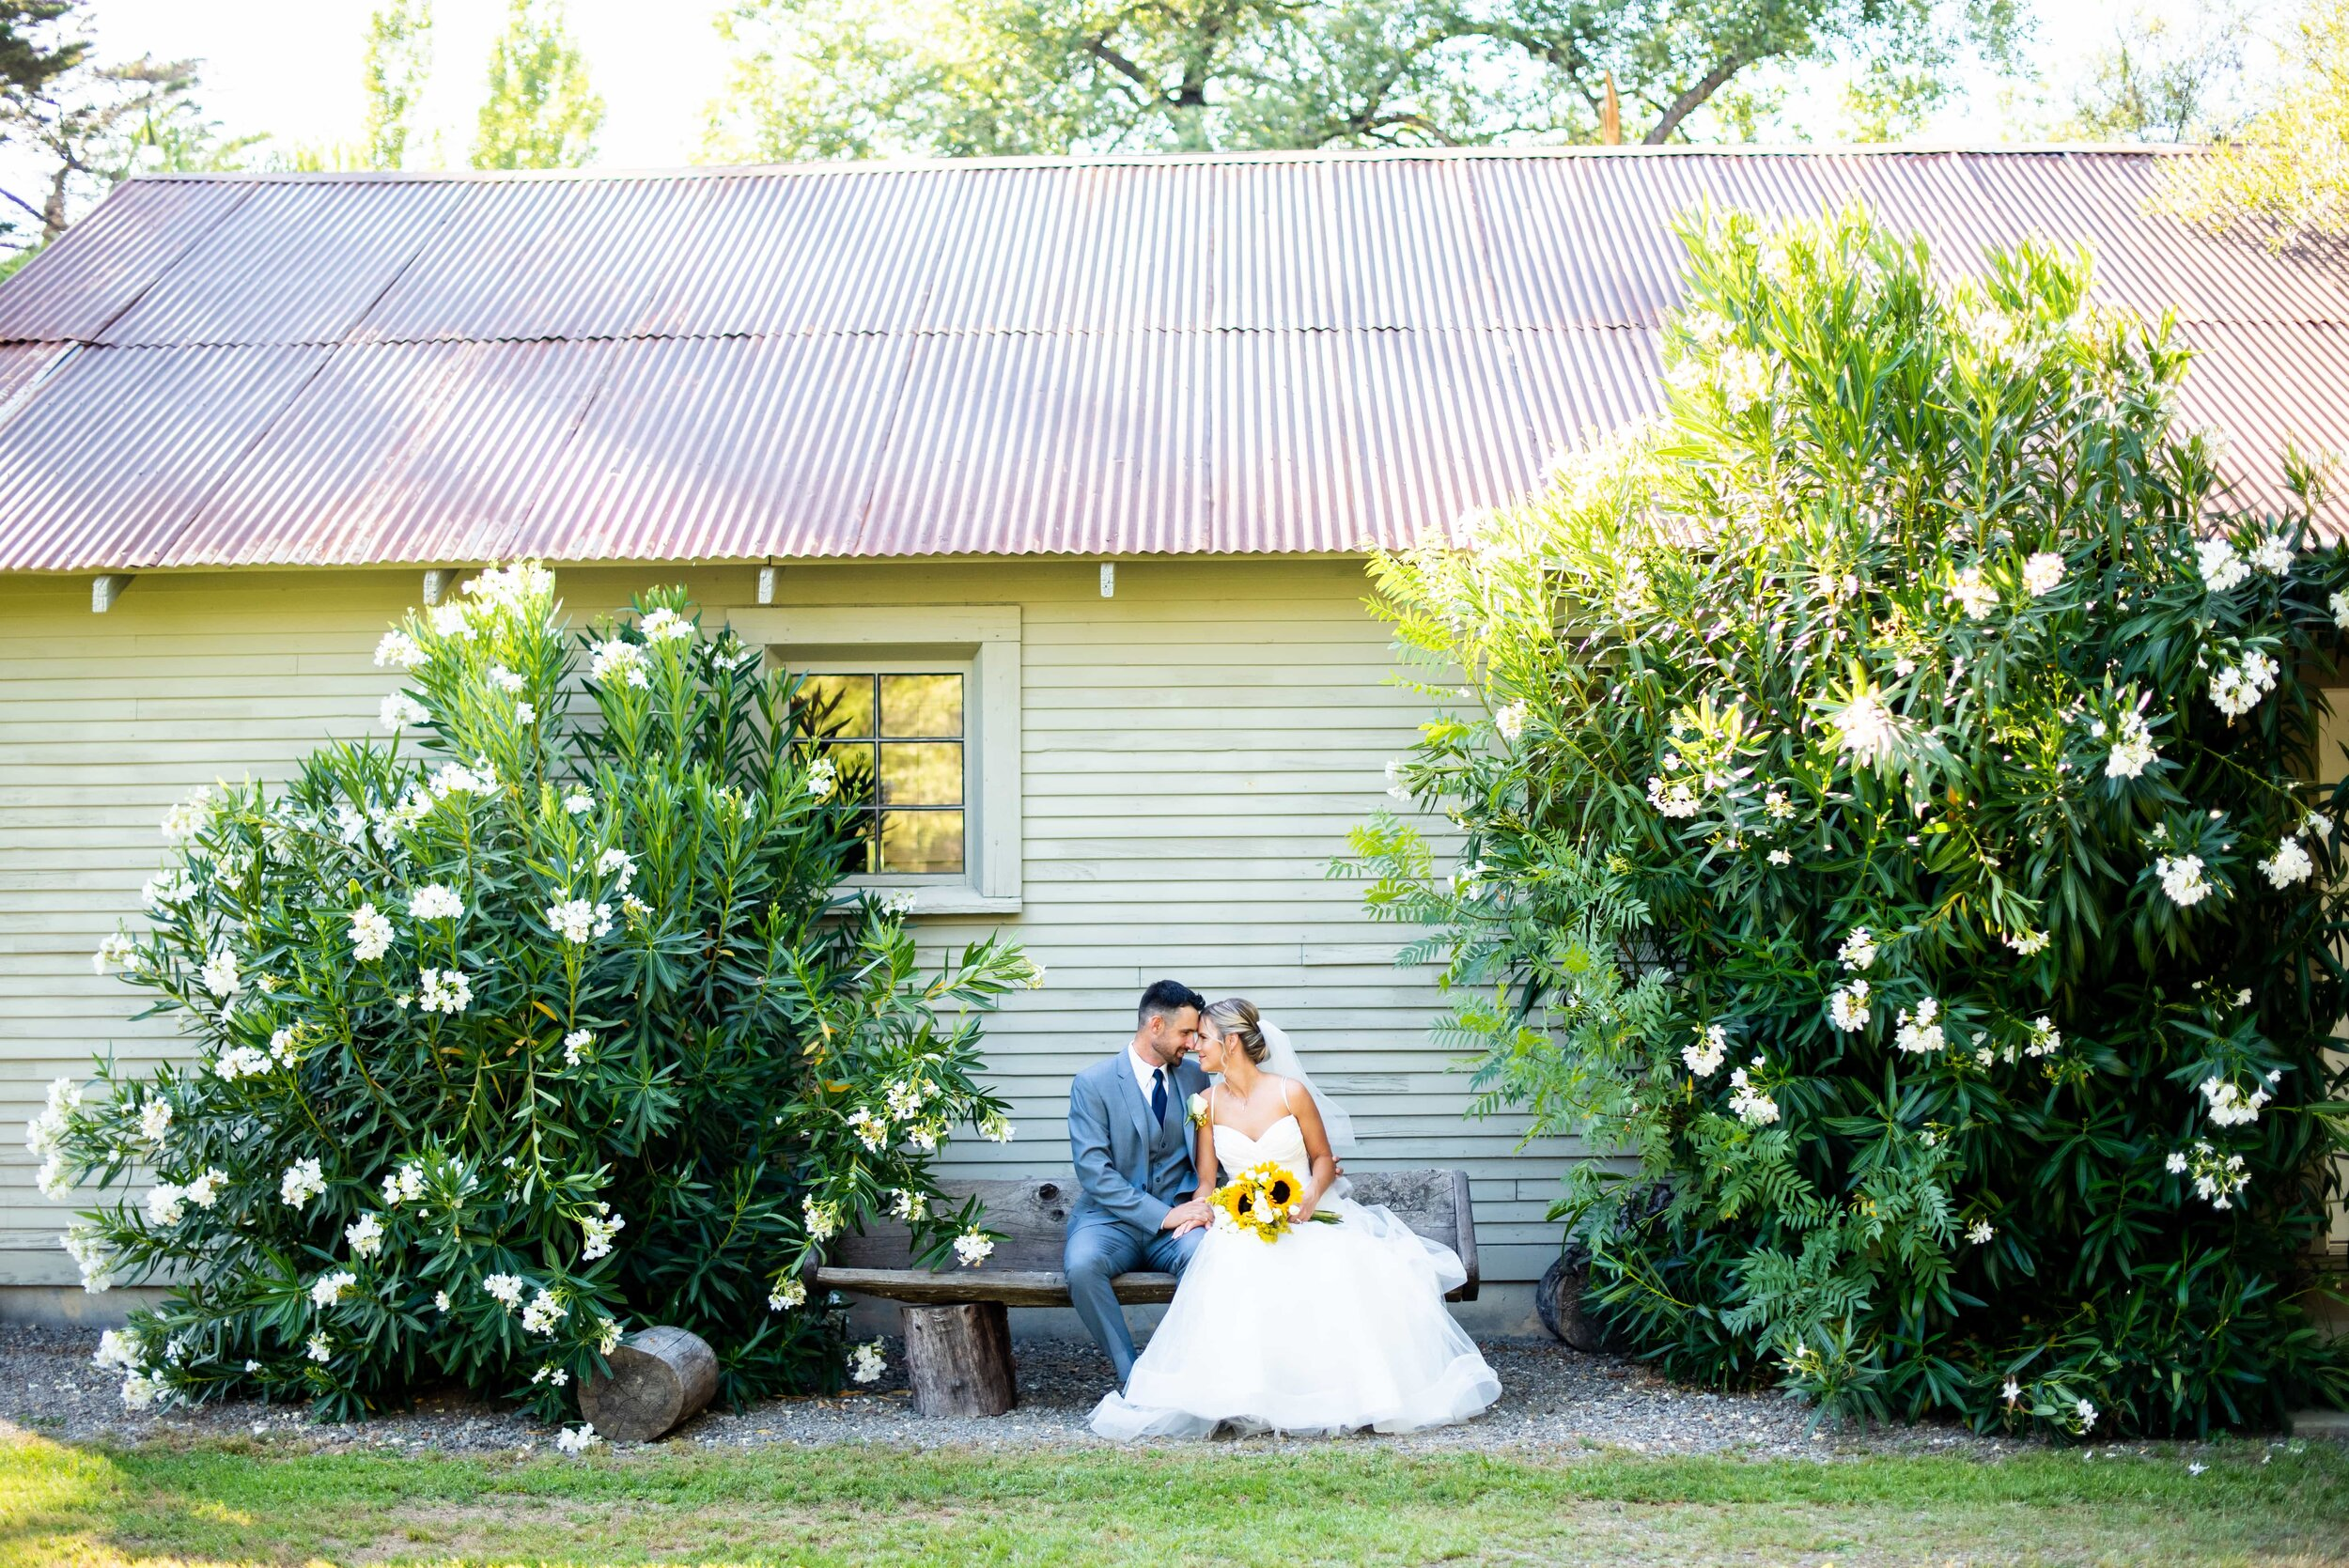 Bride and Groom on bench in front of barn